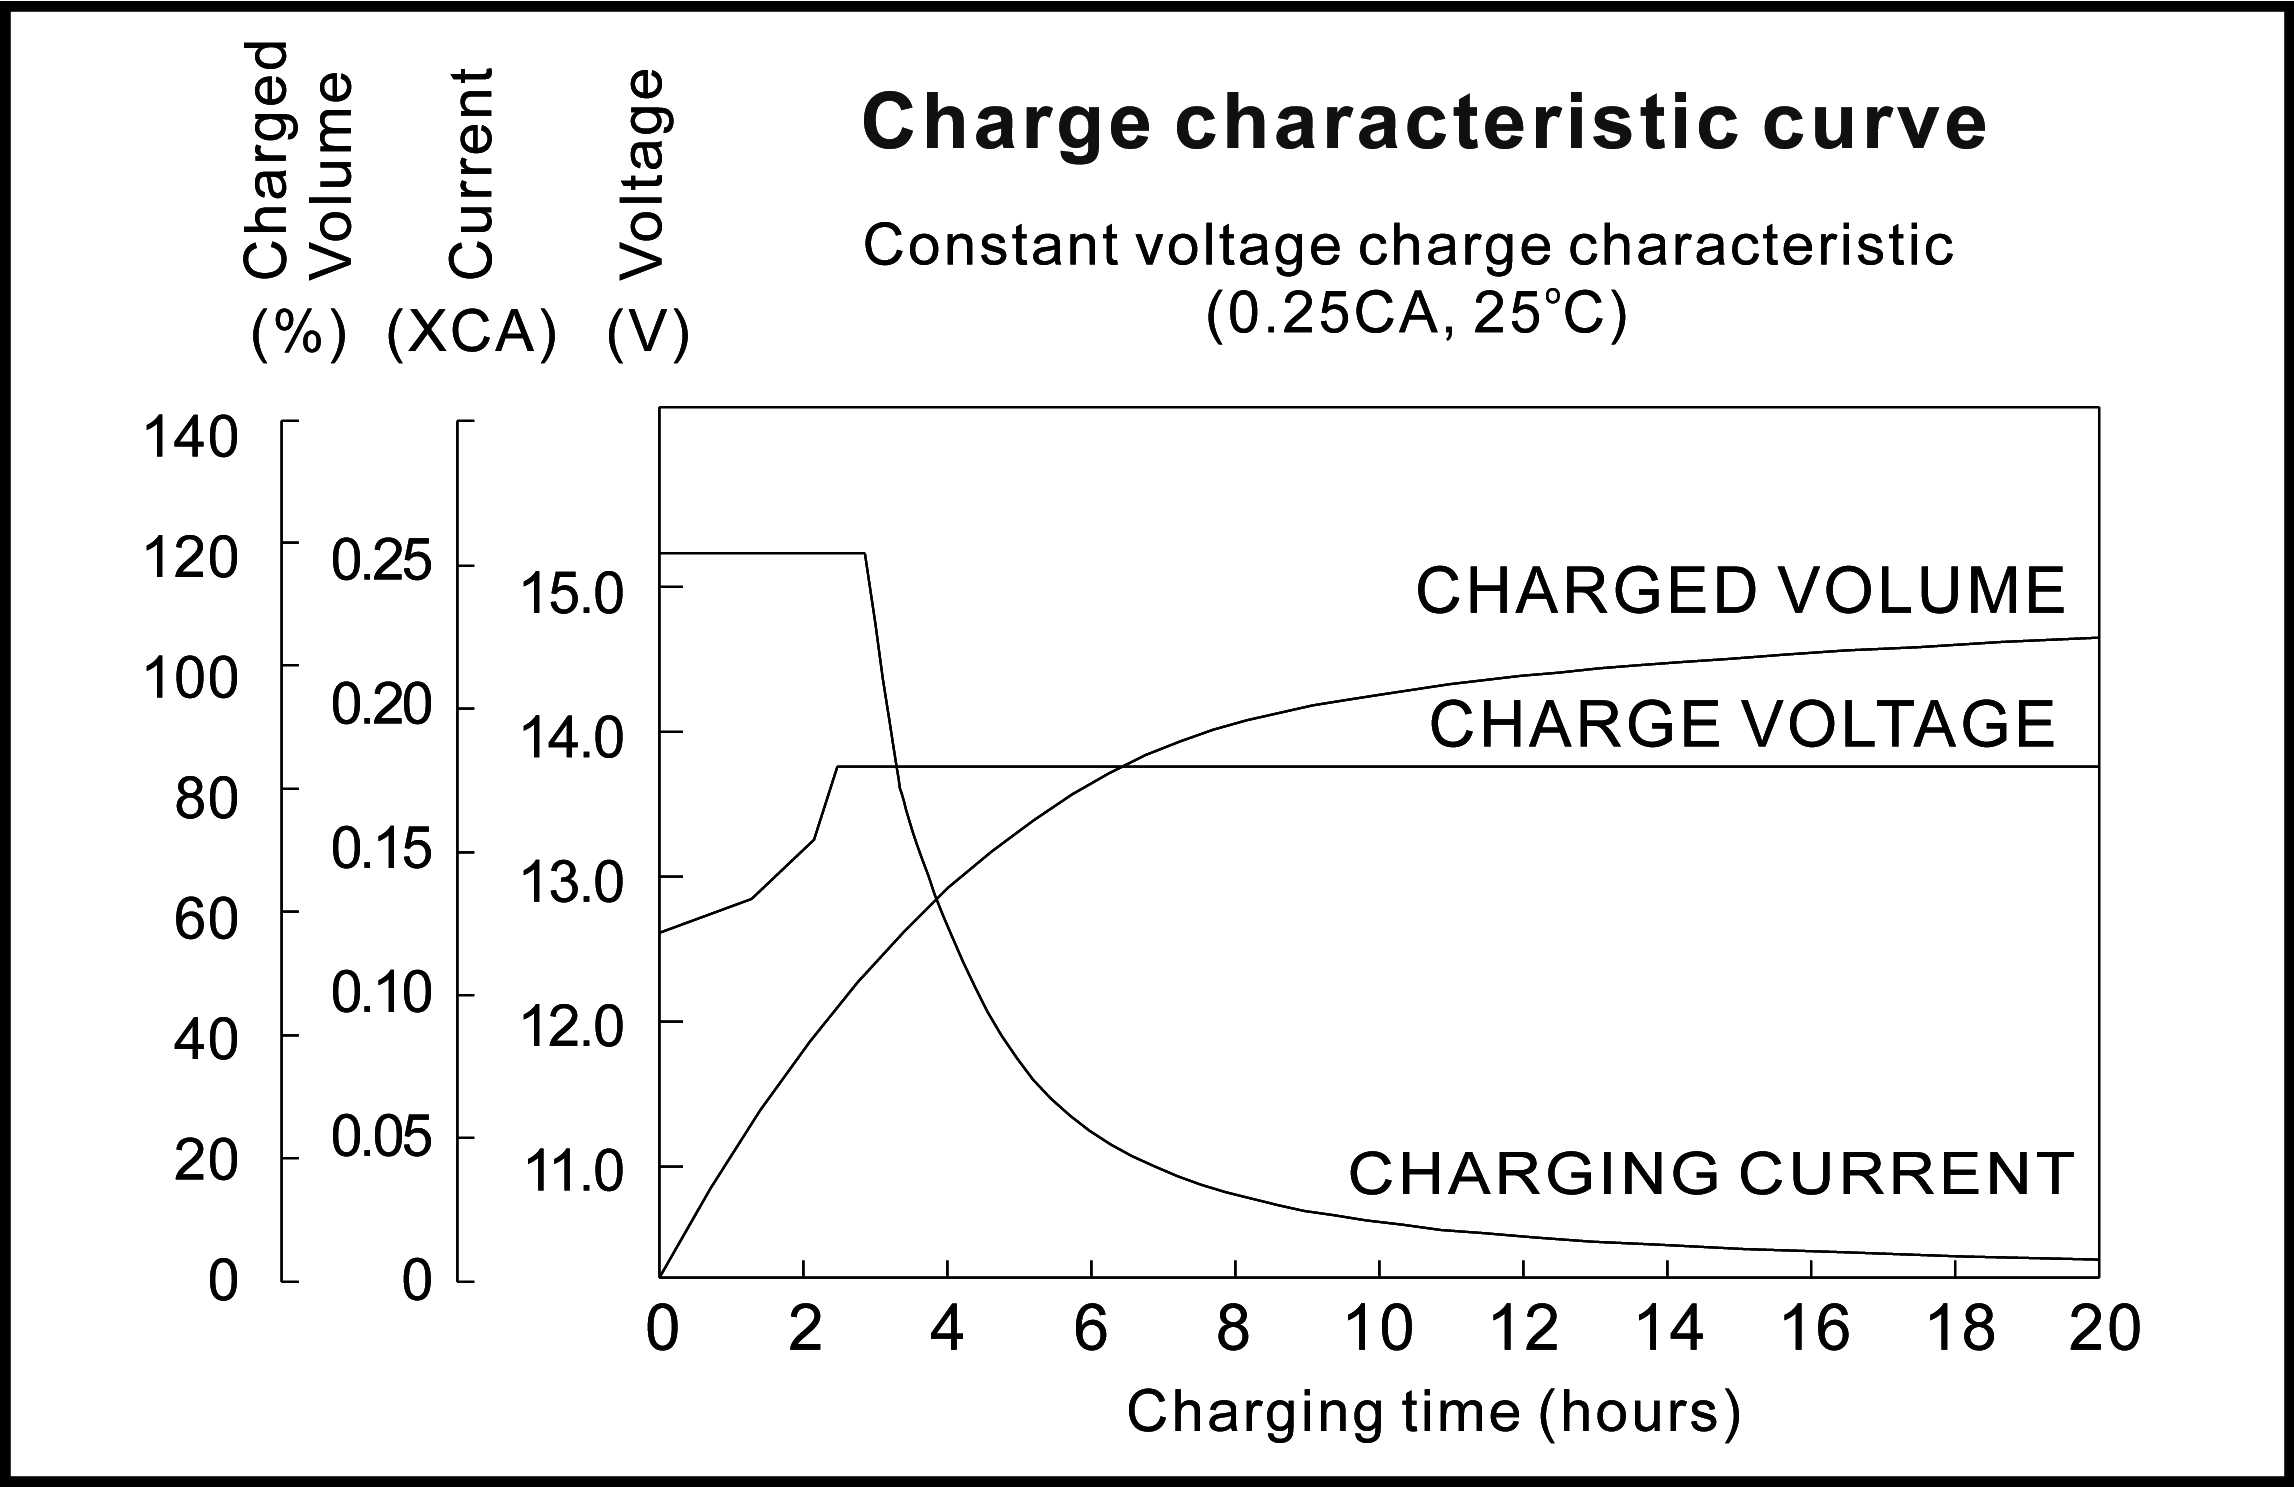 TLV1223 12V 2.3Ah Sealed Lead Acid Battery - Charge Characteristic Curve